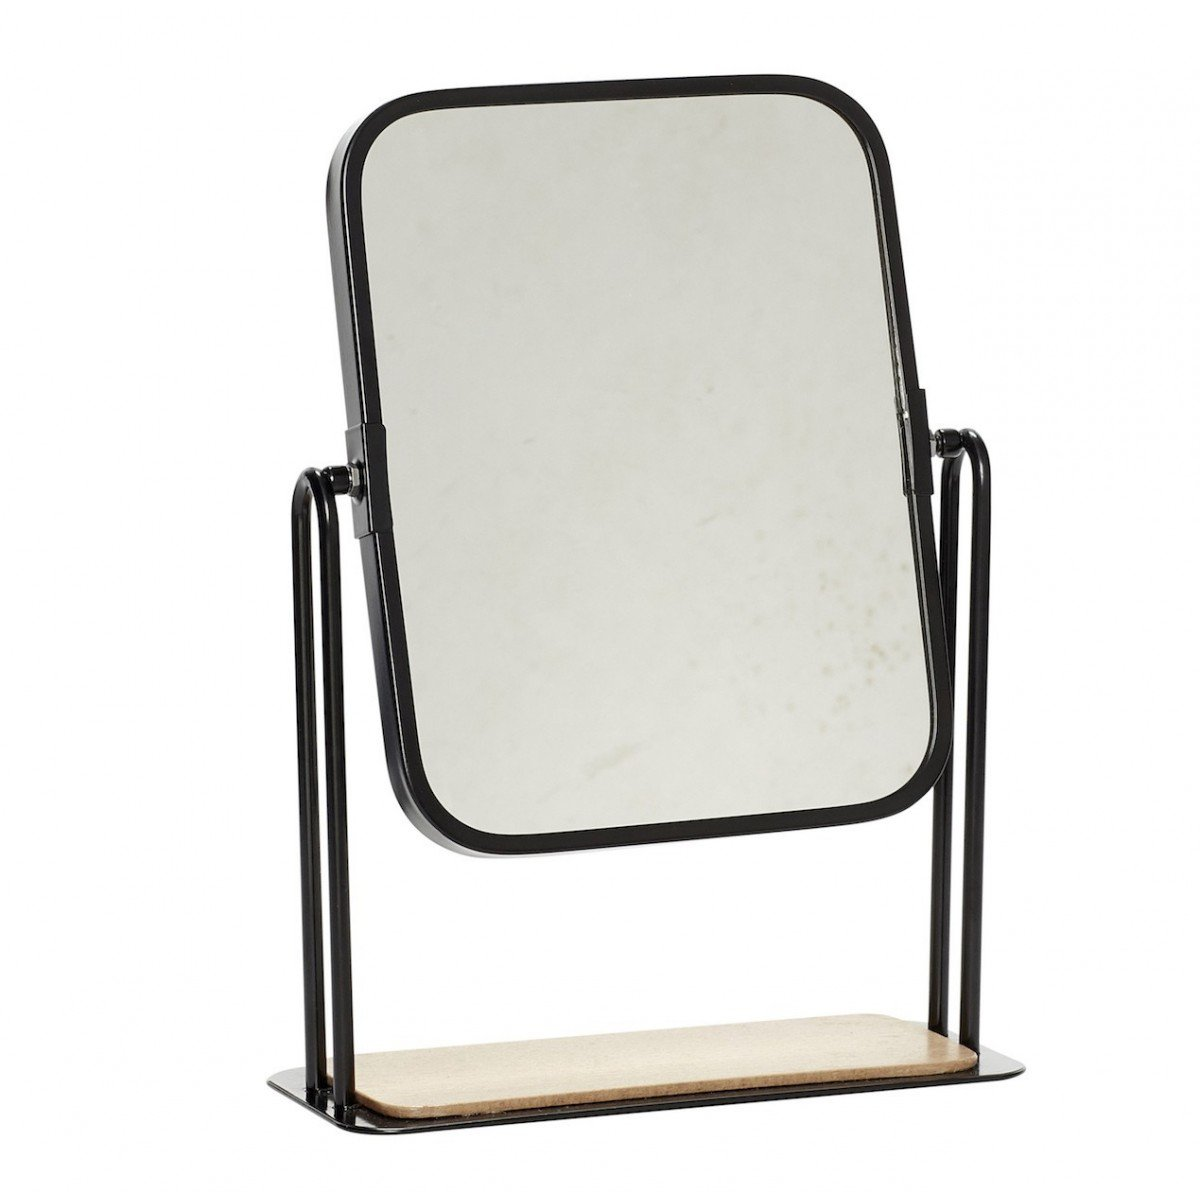 Miroir de table rectangulaire noir h bsch for Miroir rectangulaire noir